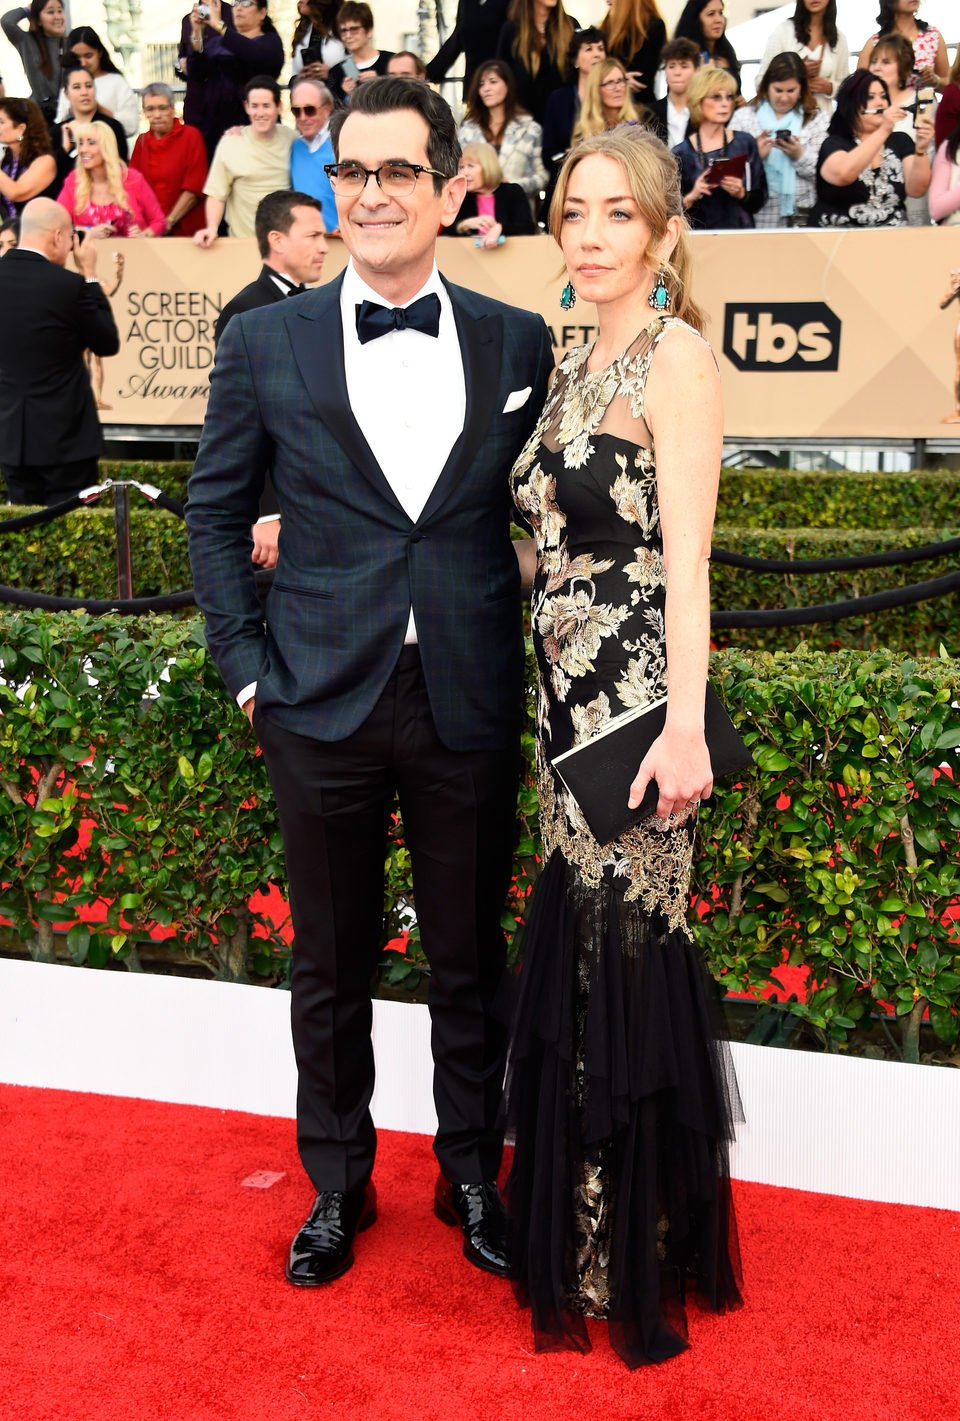 Ty Burrell and Holly Burrell in red carpet of SAG Awards 2016